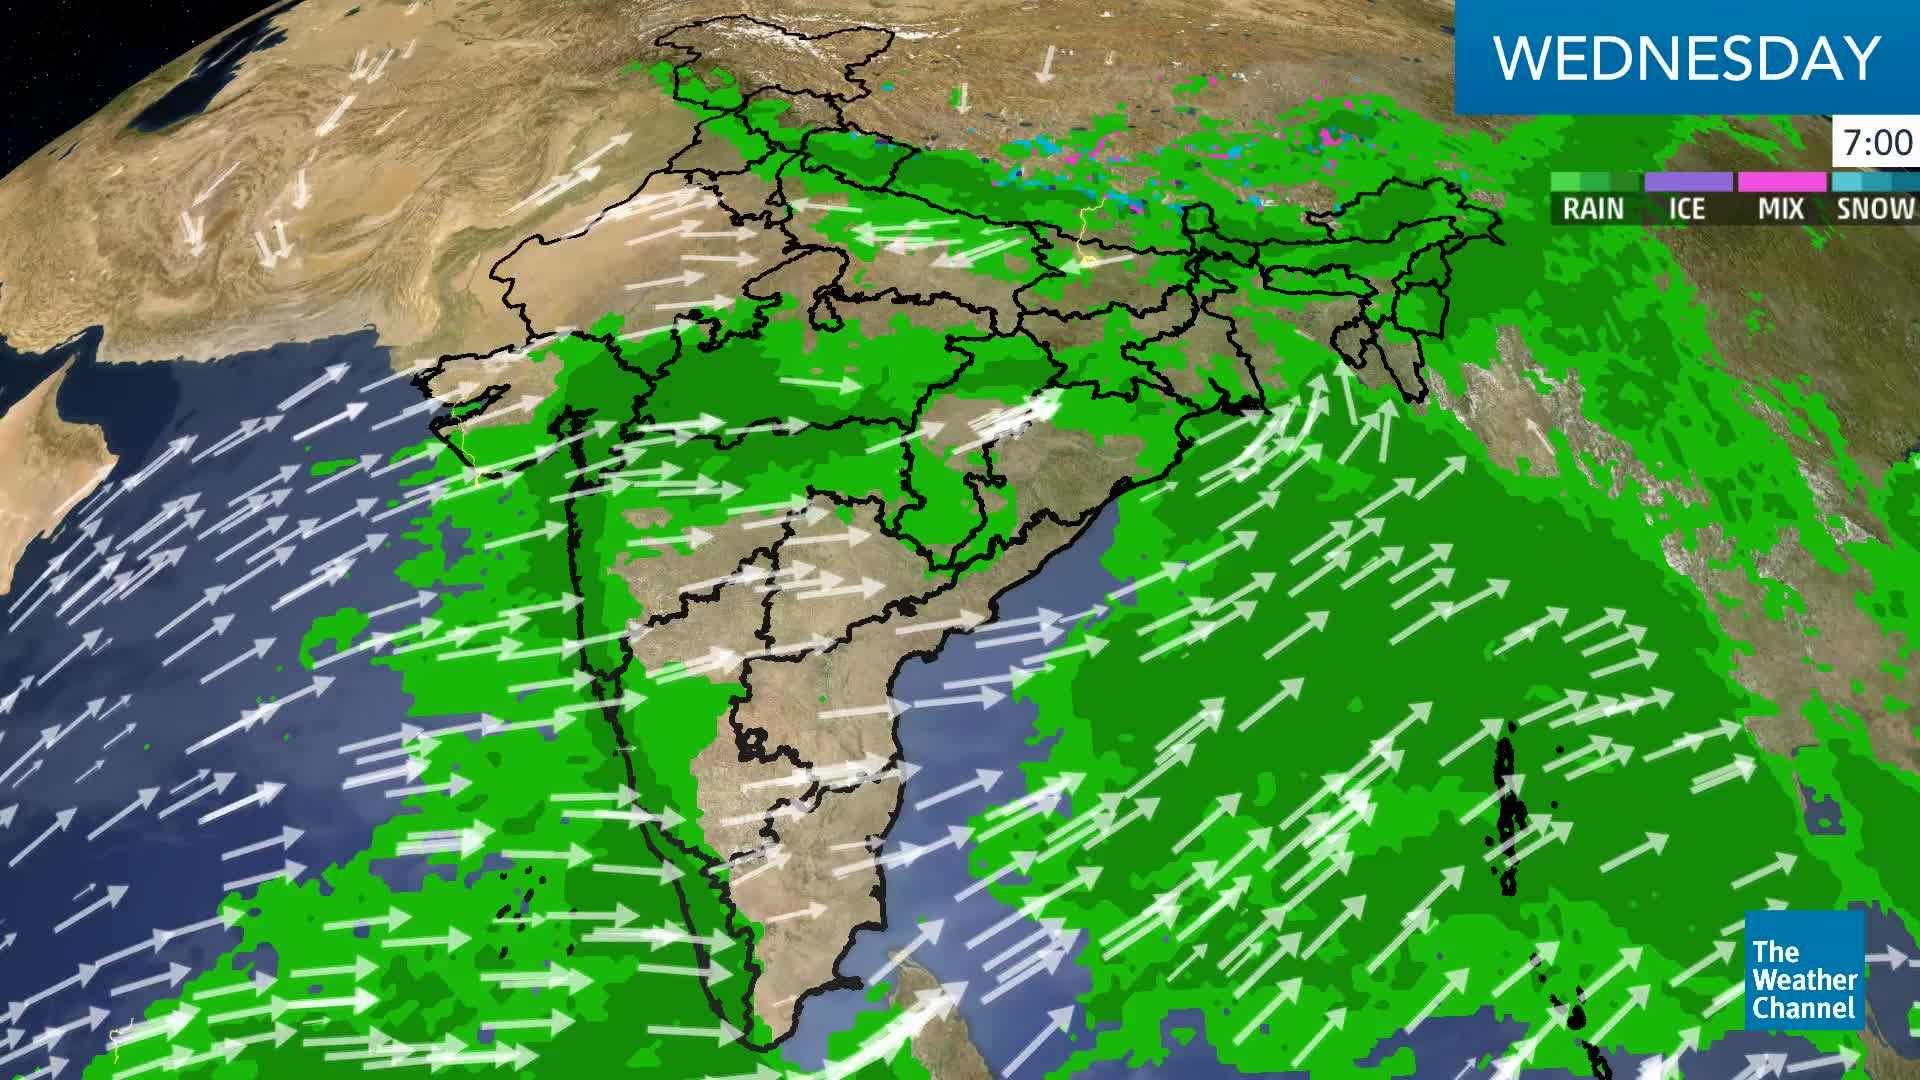 Severe Weather Alert For Western Madhya Pradesh Today And Tomorrow